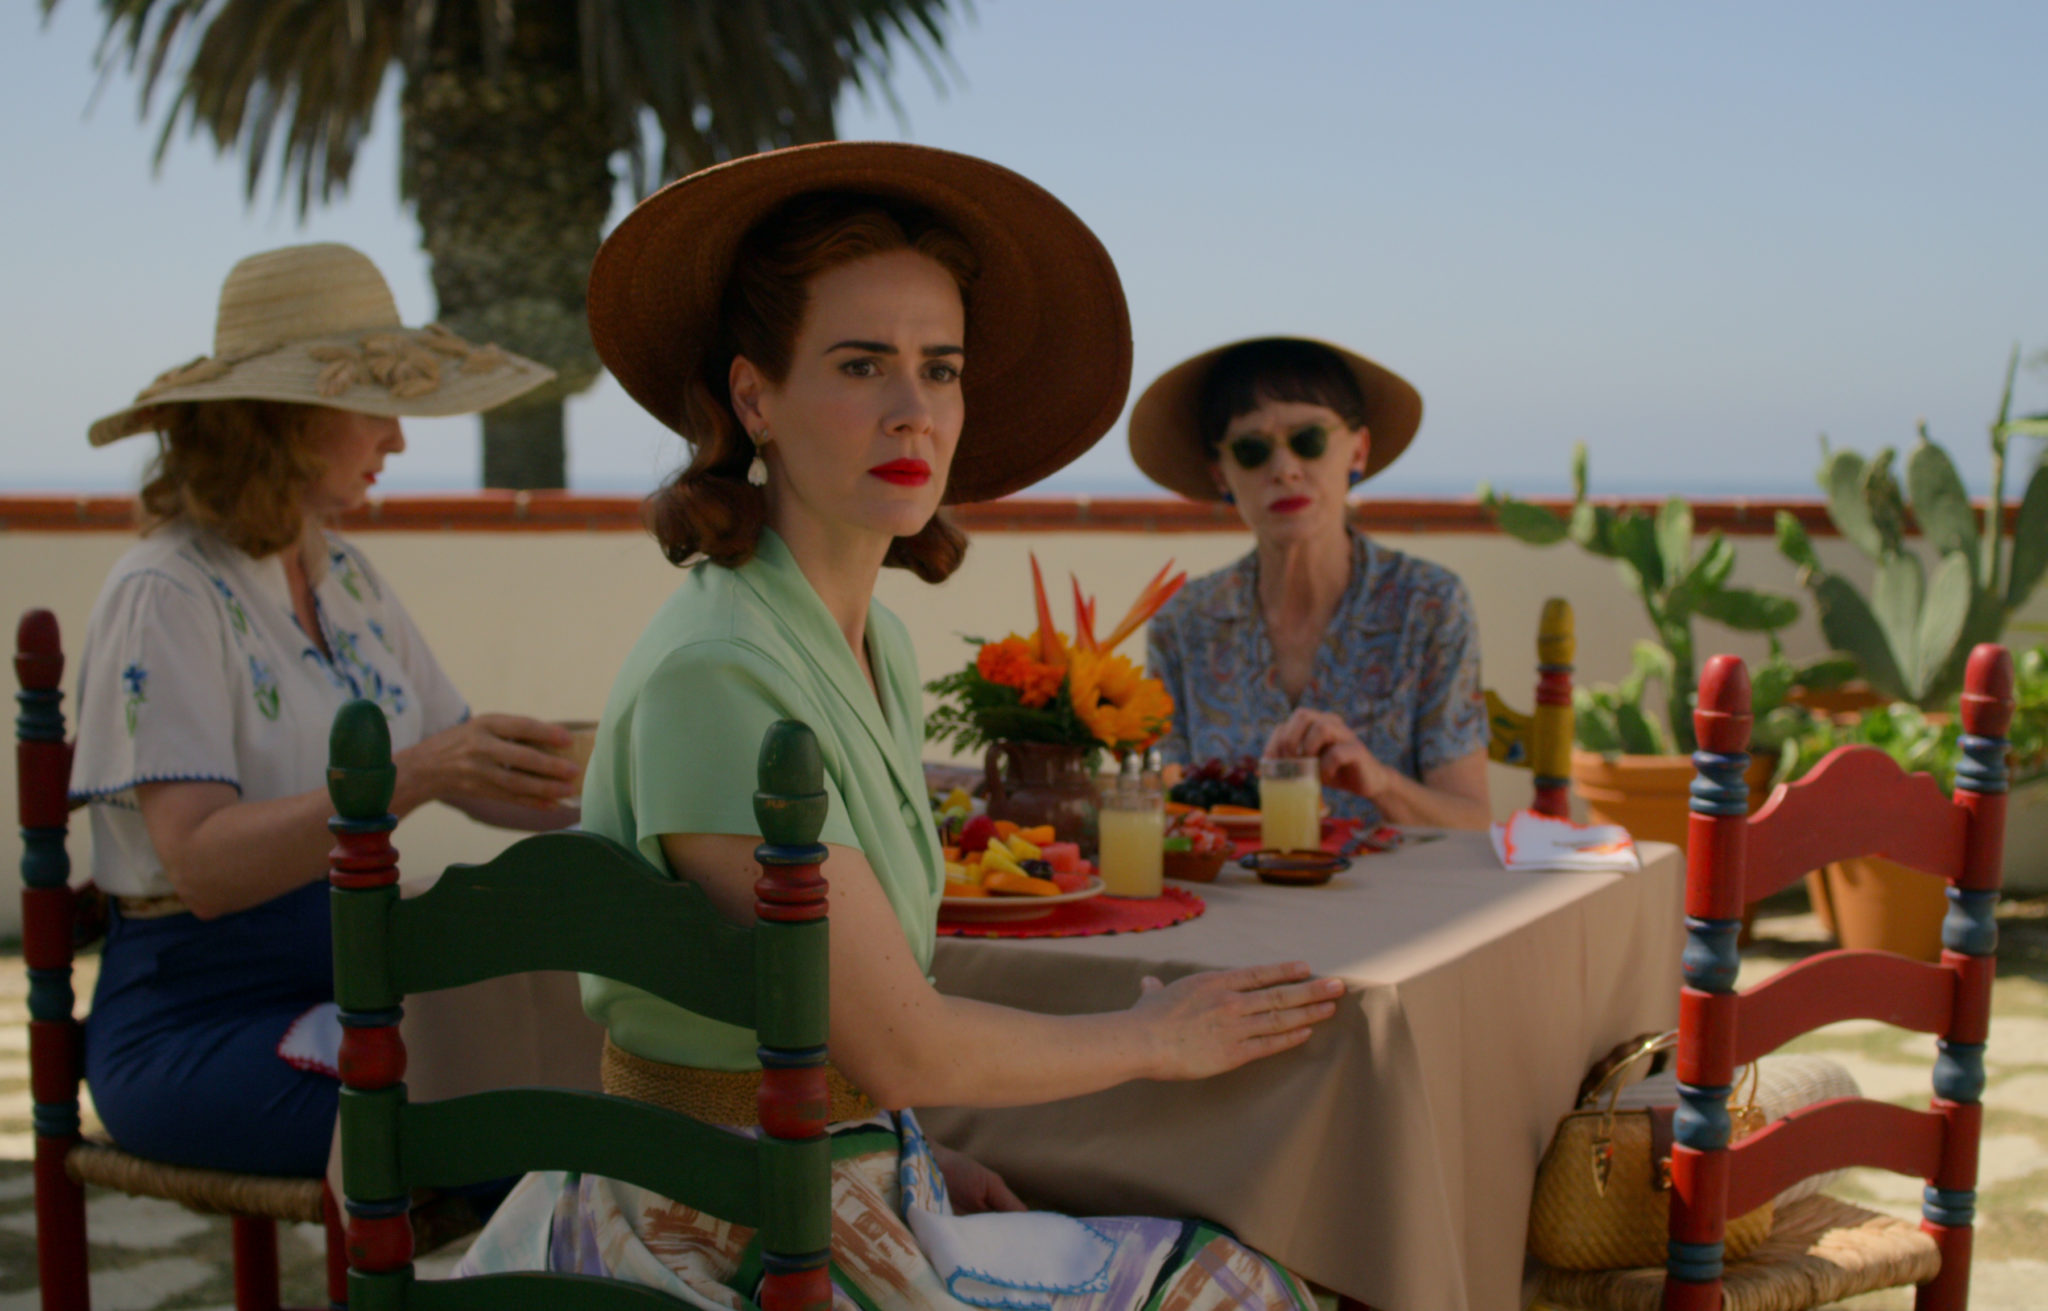 RATCHED (L to R) CYNTHIA NIXON as GWENDOLYN BRIGGS, SARAH PAULSON as MILDRED RATCHED and JUDY DAVIS as NURSE BETSY BUCKET in episode 108 of Cr. COURTESY OF NETFLIX © 2020